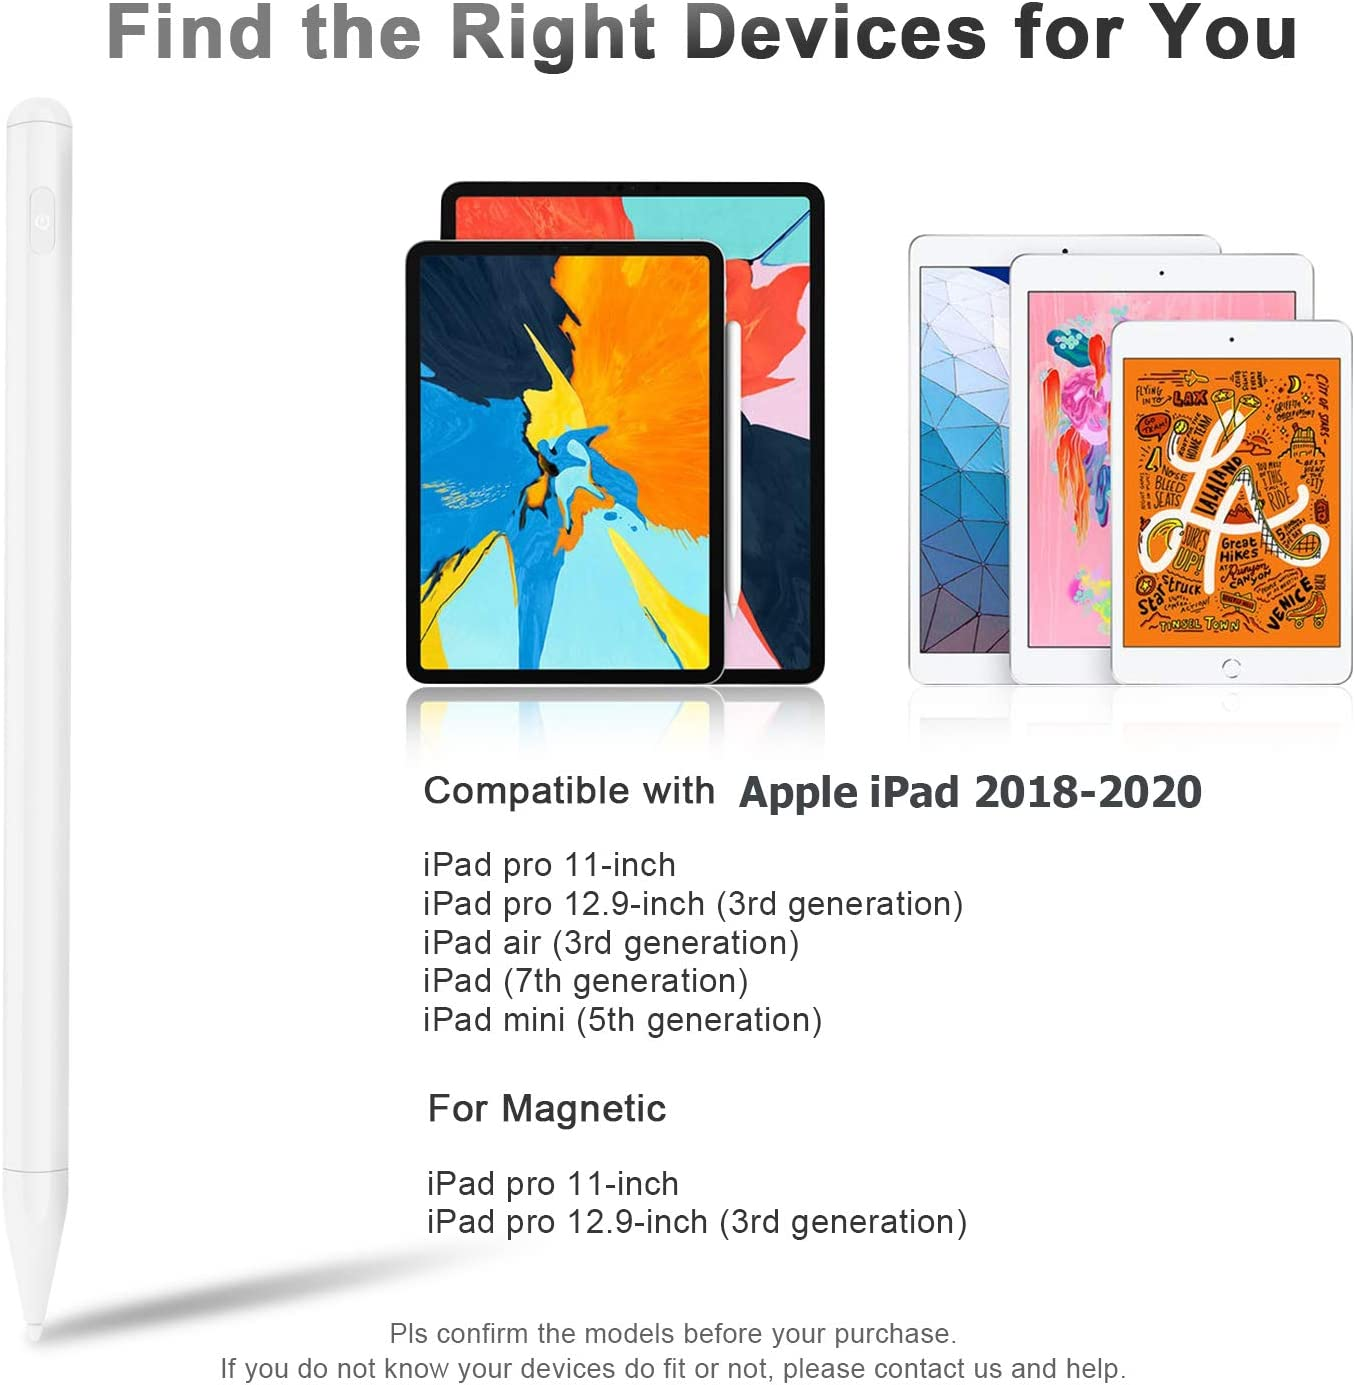 Compatible with iPad Palm Rejection Active Stylus Pen for iPad 7th Gen 2pcs High Precision/&Sensitivity Fine Tip Ecomono Magnetic Digital Drawing Pencil for iPad Pro //Pro 11//12.9//Air 3//Mini 5th